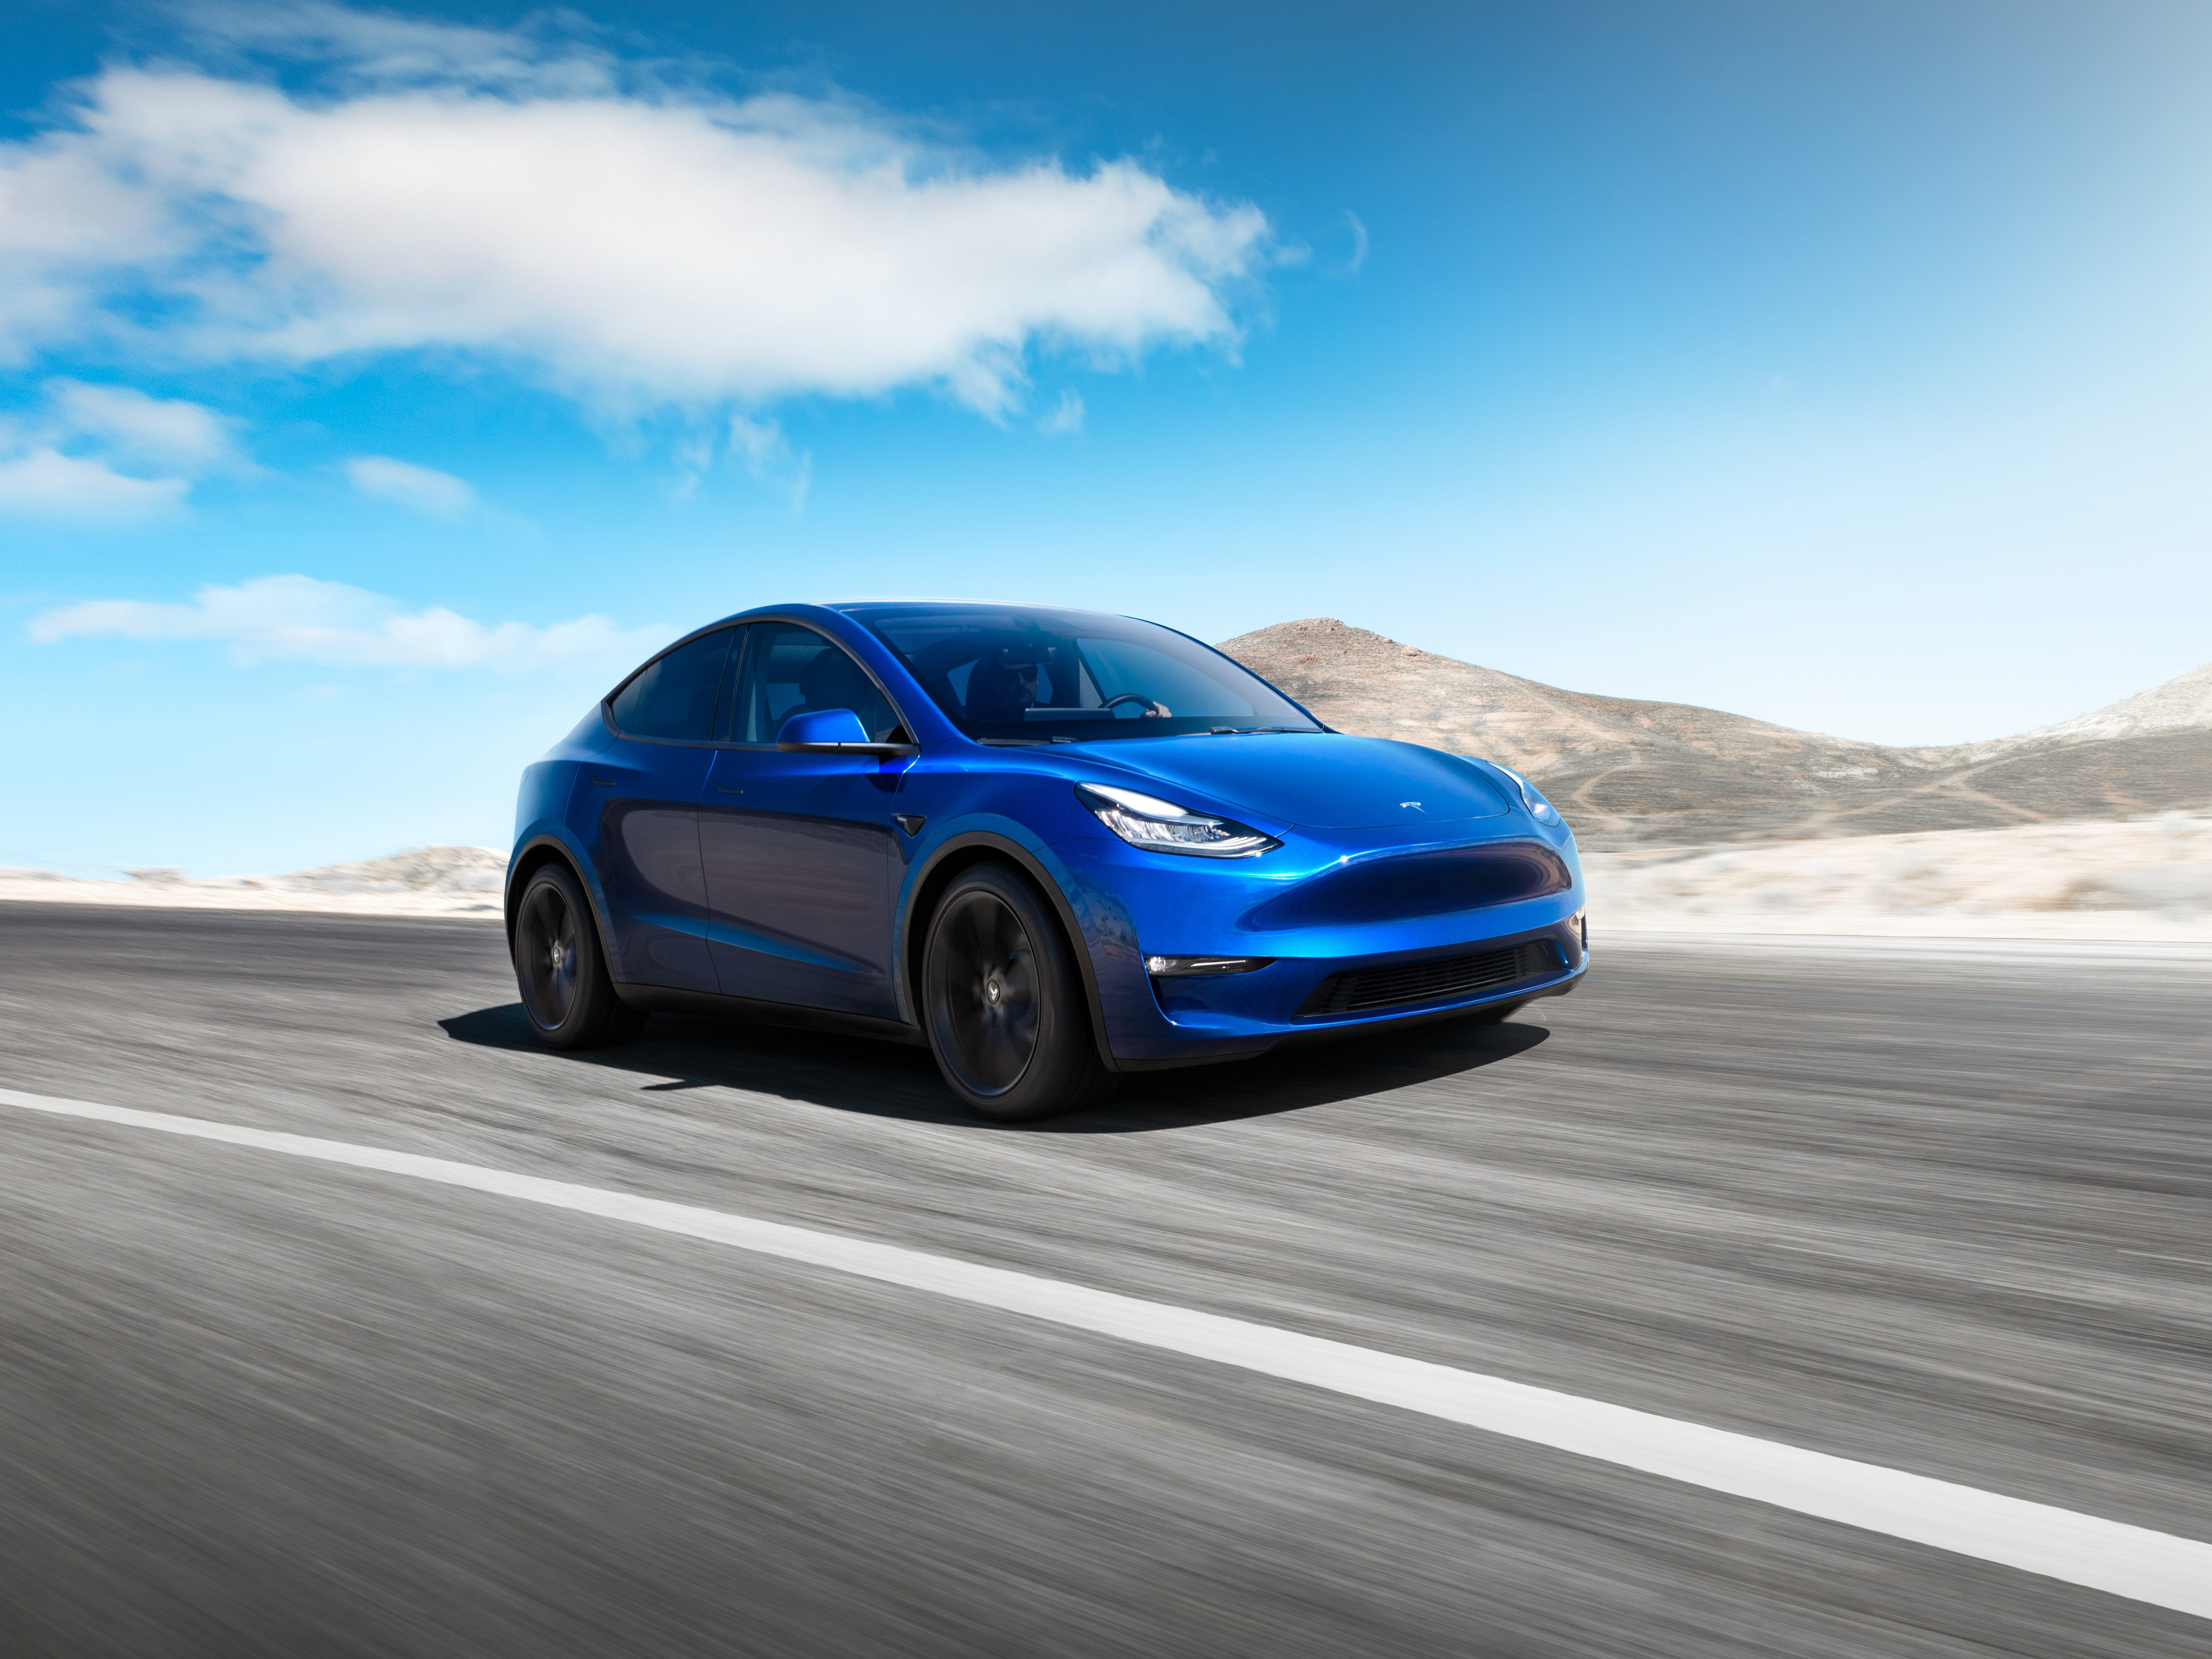 A handout photo made available by US automobile manufacturer Tesla, showing the new Tesla Model Y electric car. Model Y is an all-electric, mid-size SUV, starting at 39,000 USD for the standard version and 47,000 USD for the long-range version has a range of 300 miles.